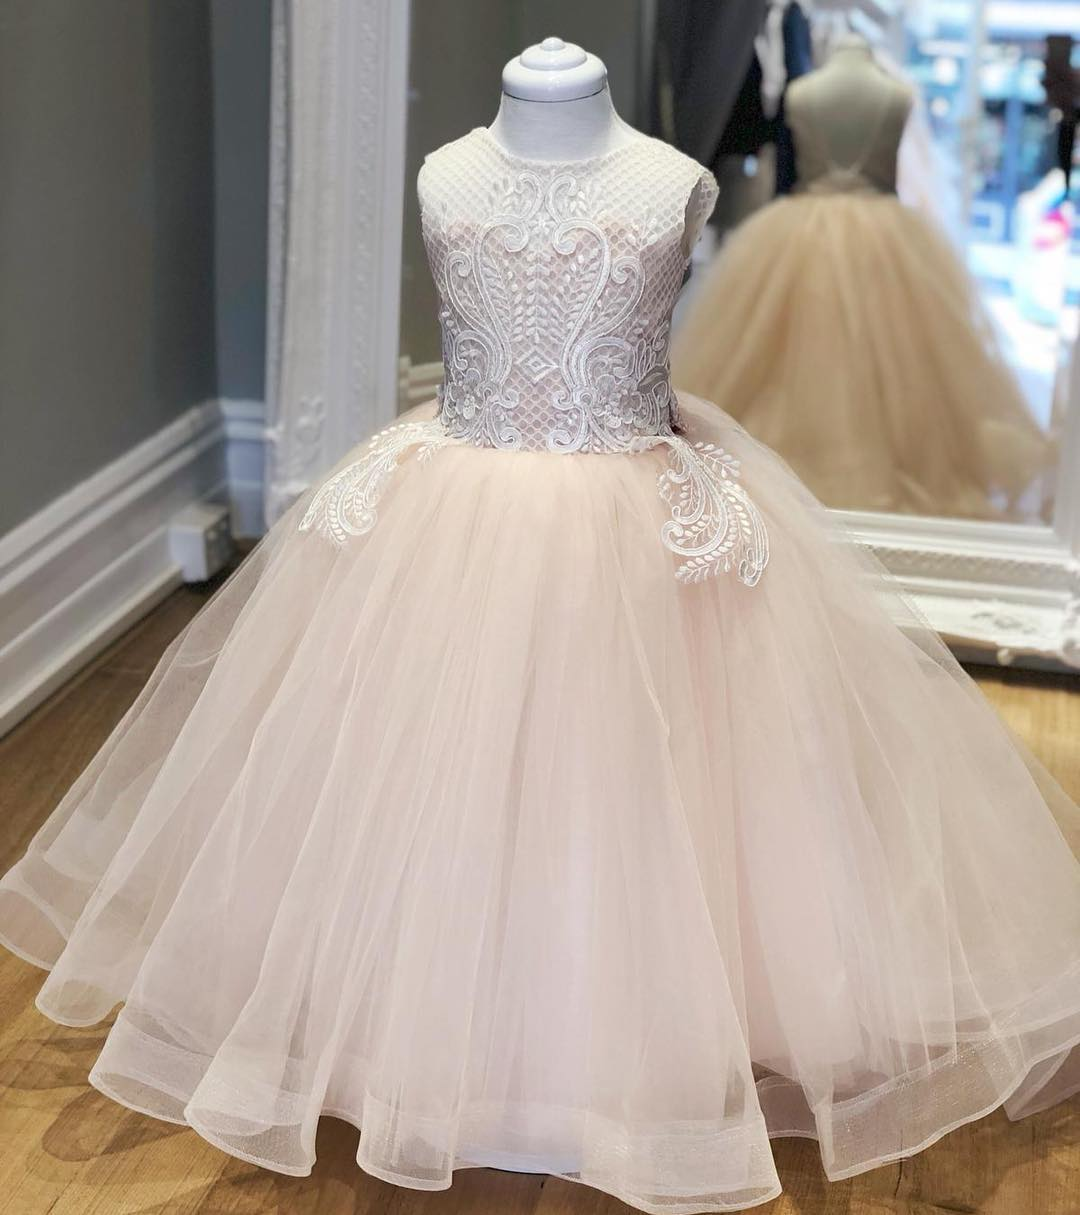 Pink Long Flower Girl Dress With White Lace Modsele Online Store